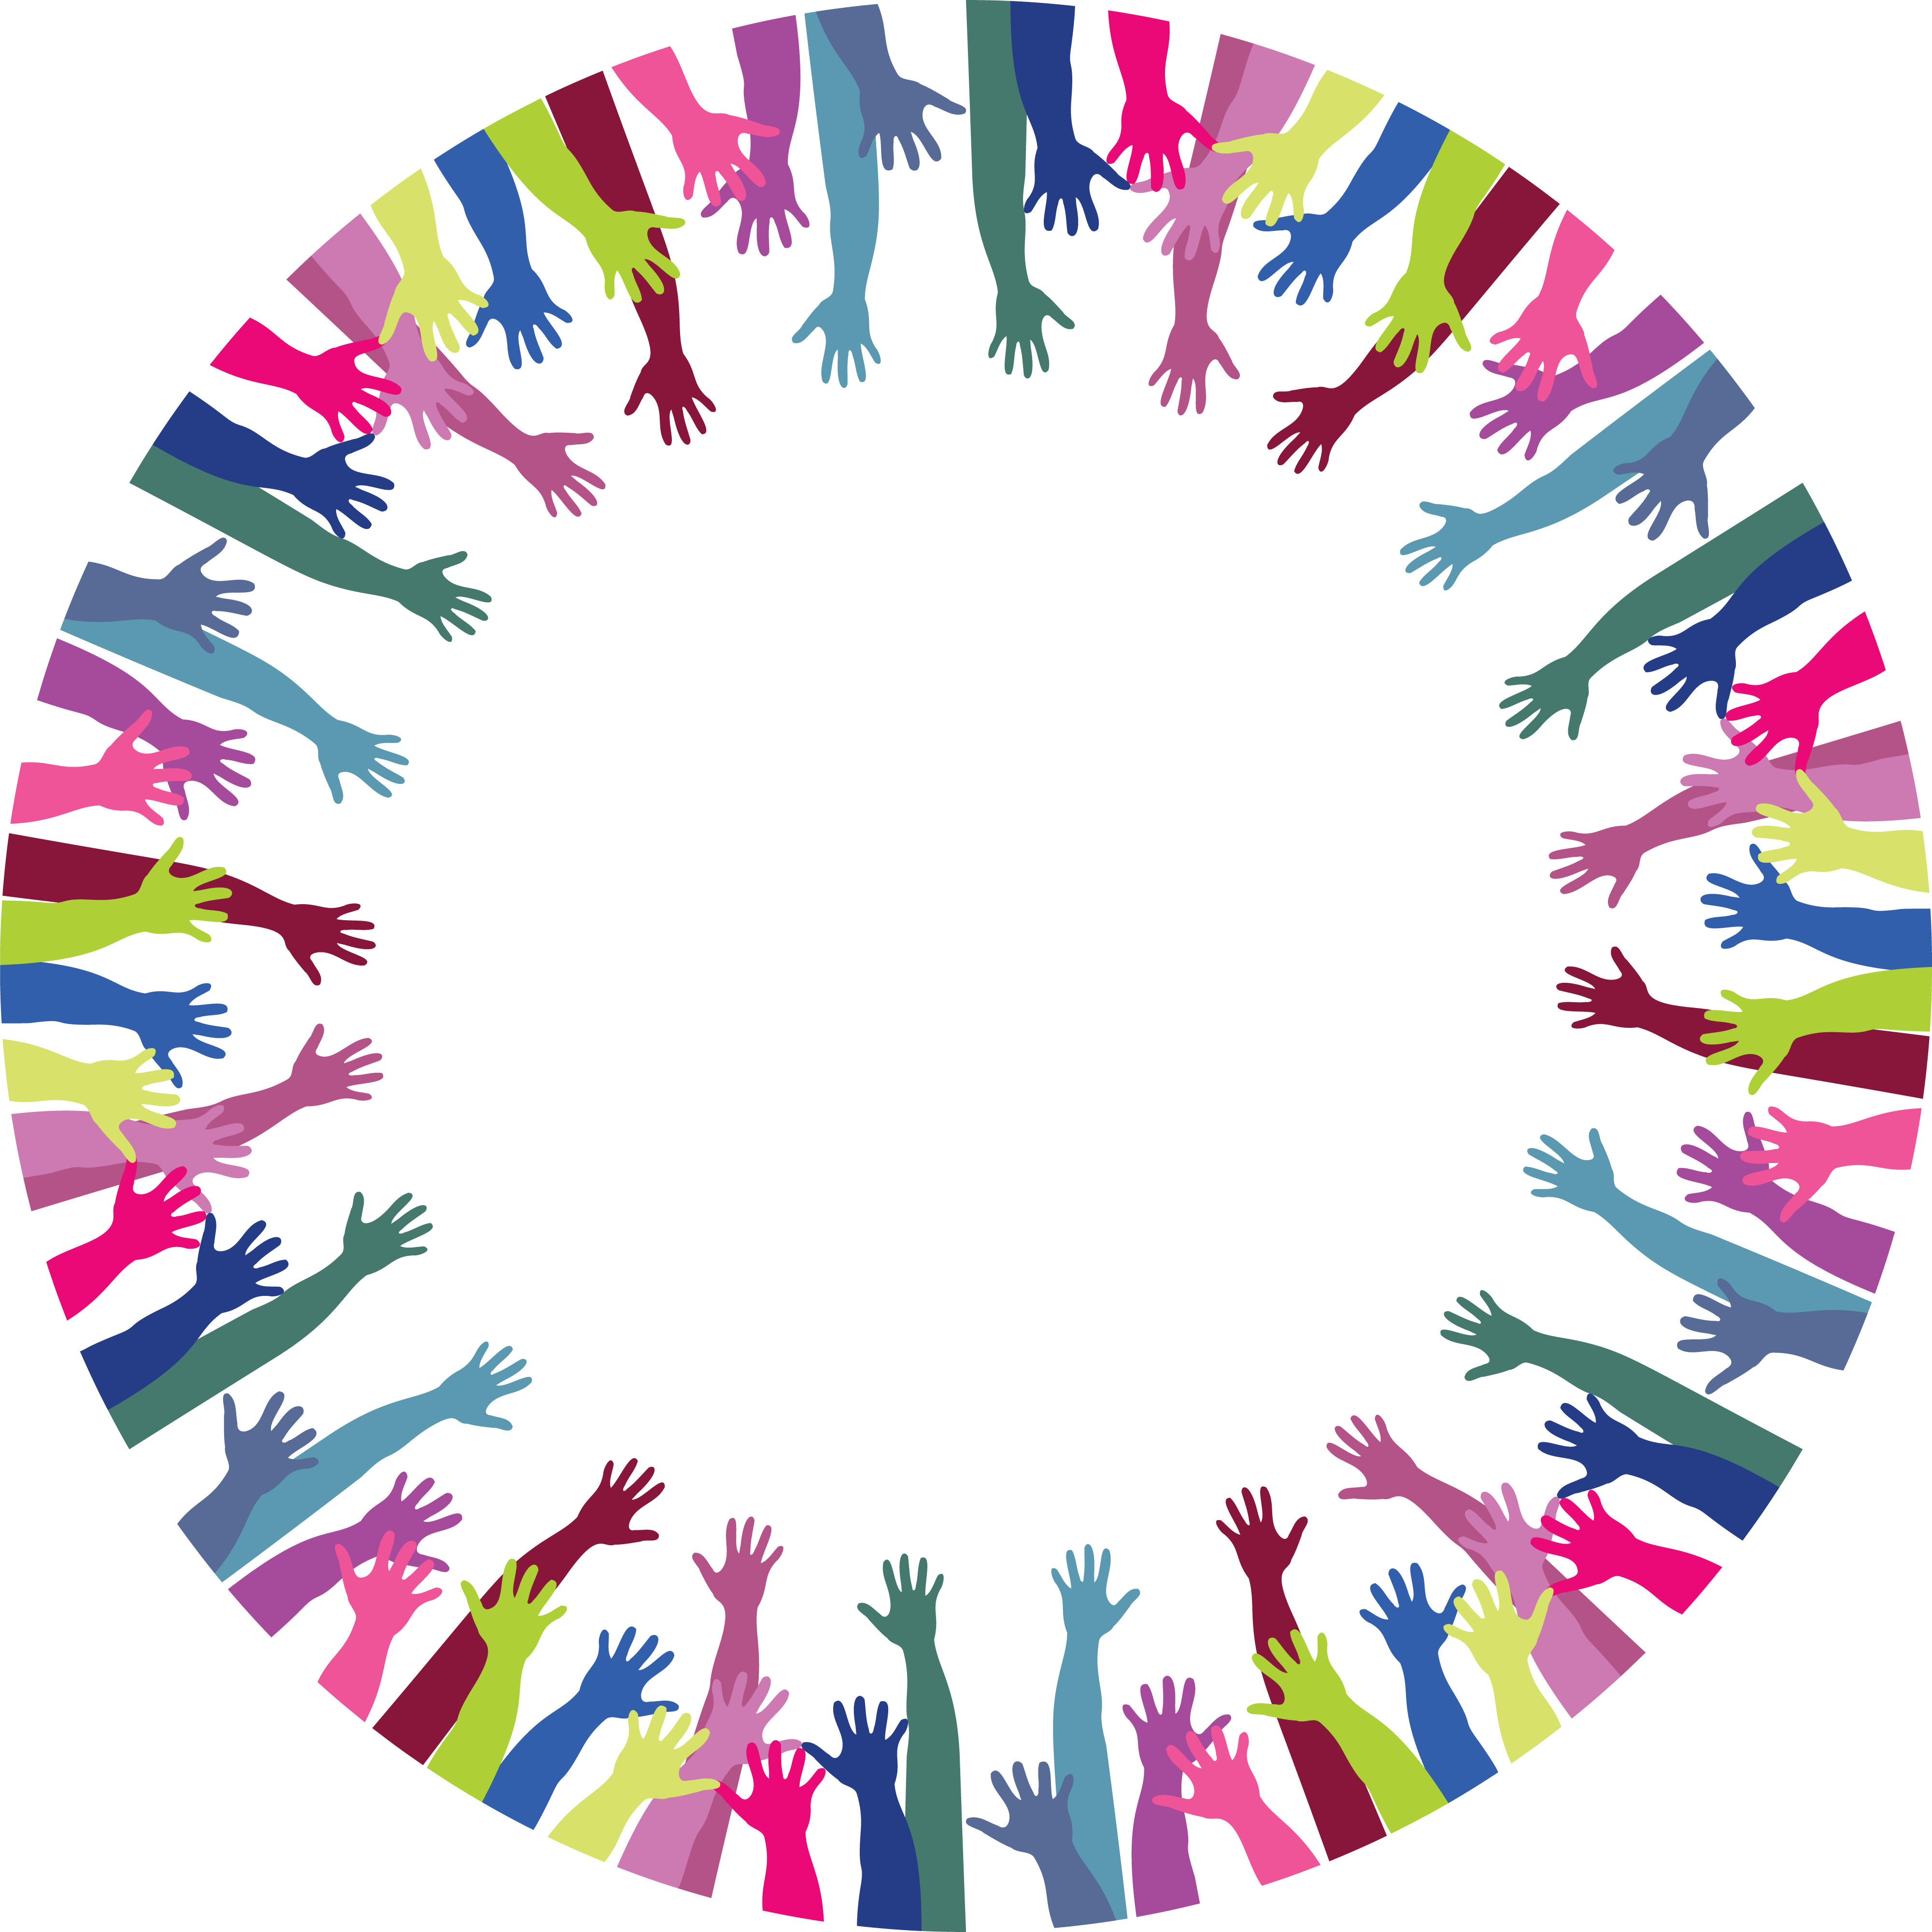 Hands clipart circle. Png of transparent images